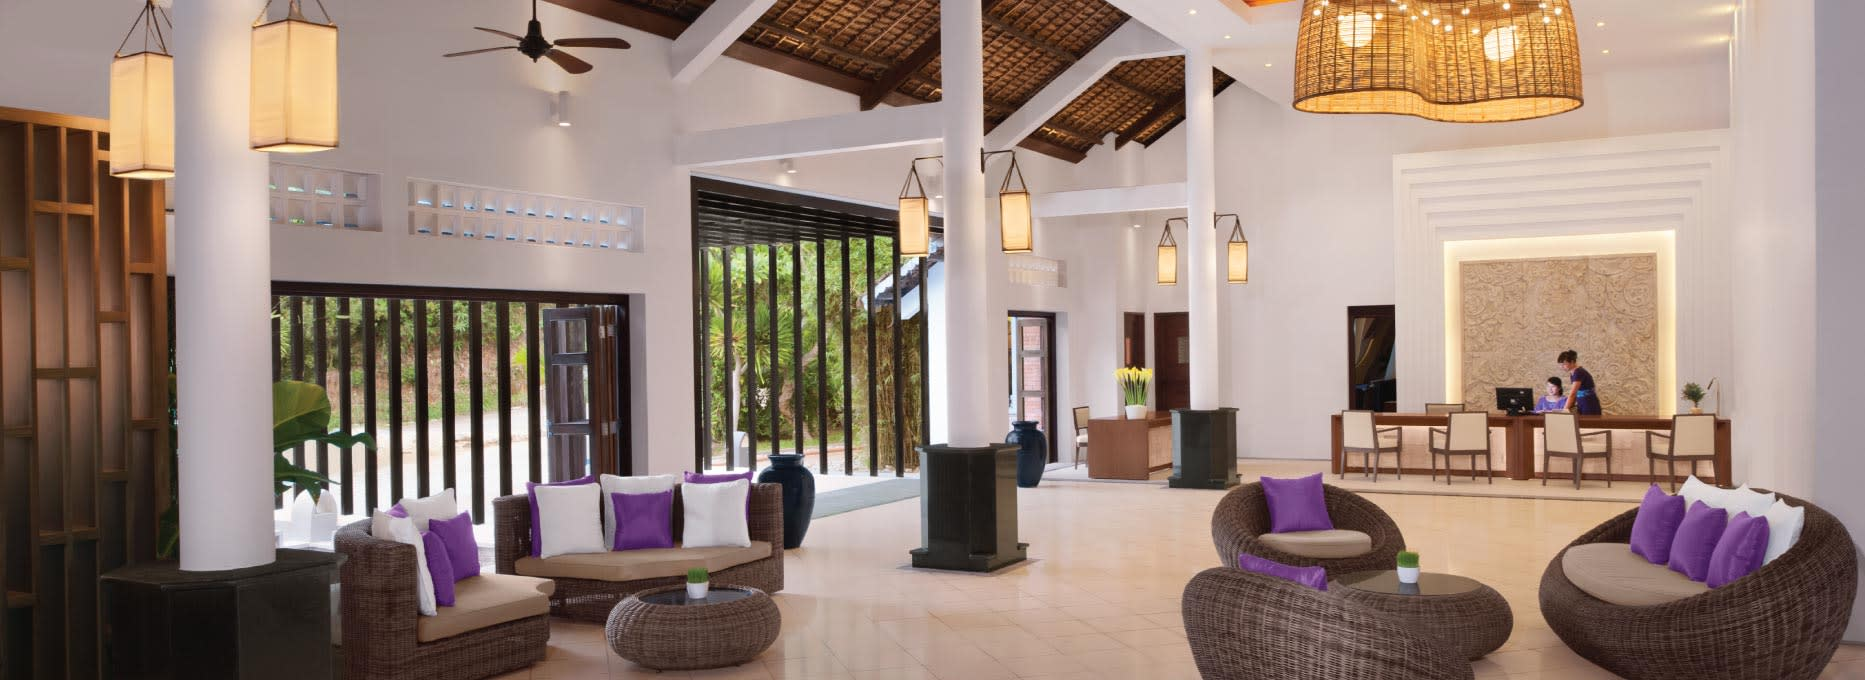 Interior of the lobby area of AVANI Quy Nhon Resort